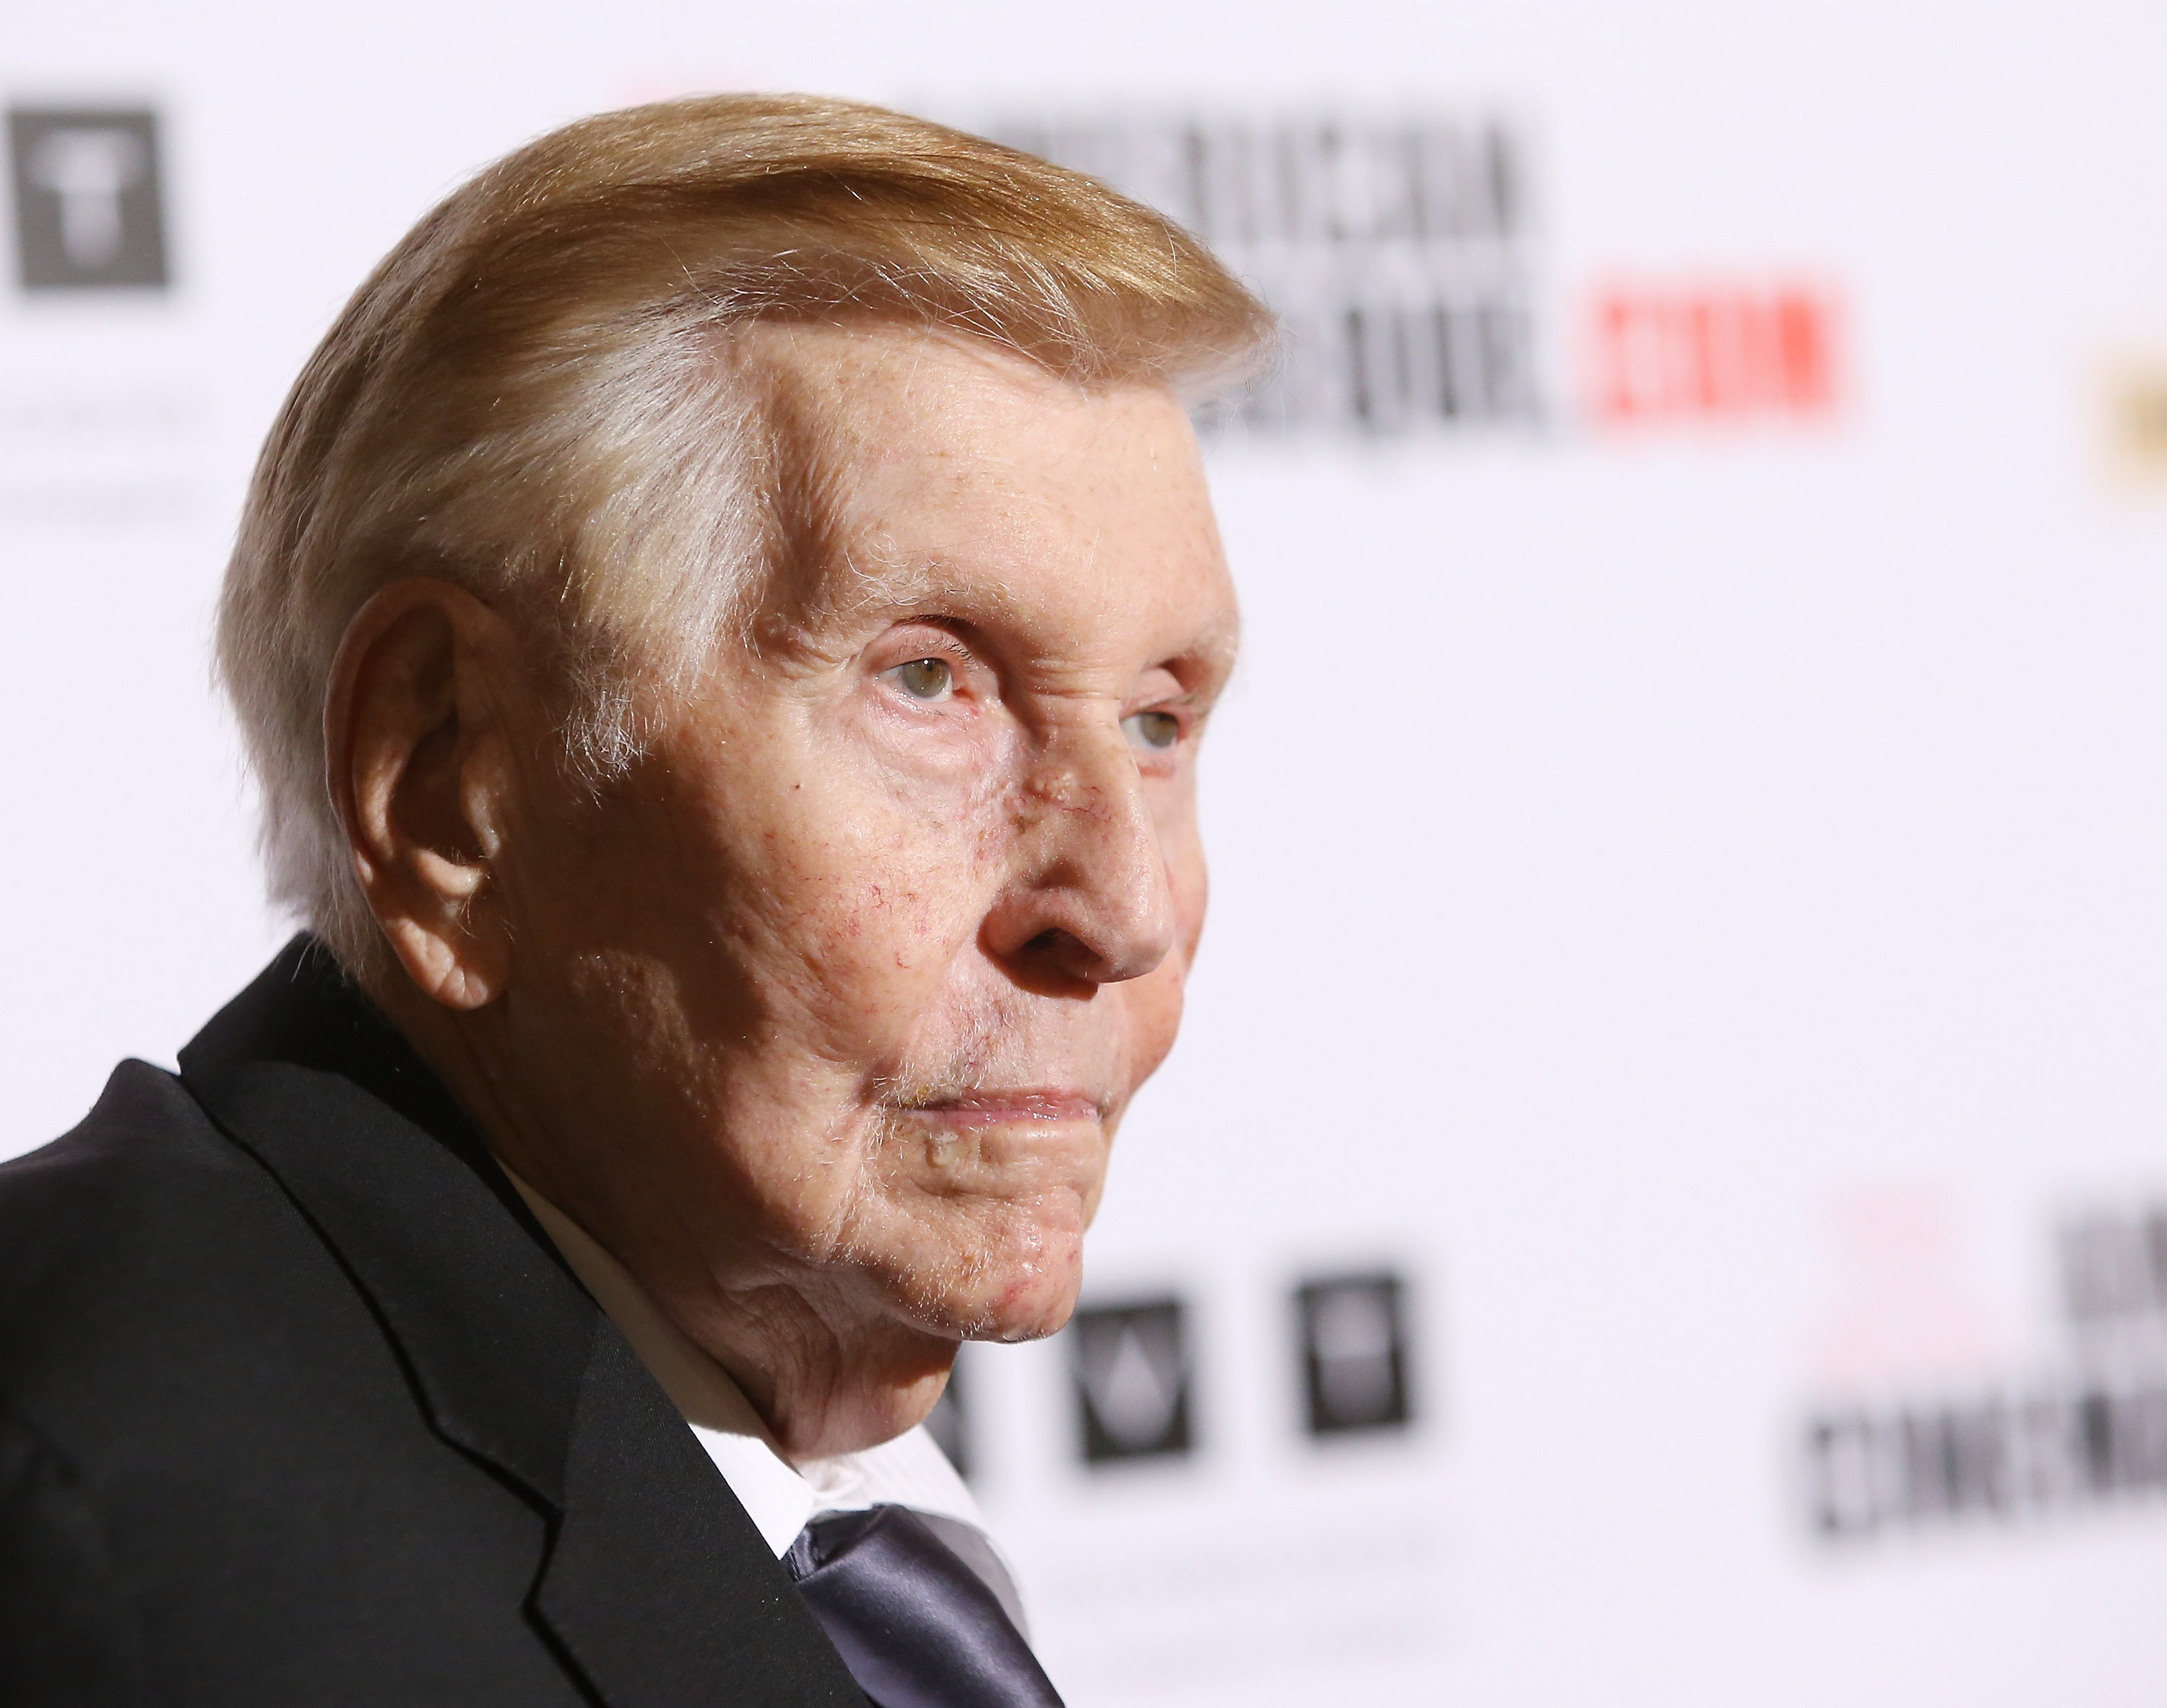 Sumner Redstone arrives at the 27th American Cinematheque Award honoring Jerry Bruckheimer held at The Beverly Hilton Hotel on December 12, 2013 in Beverly Hills, California.